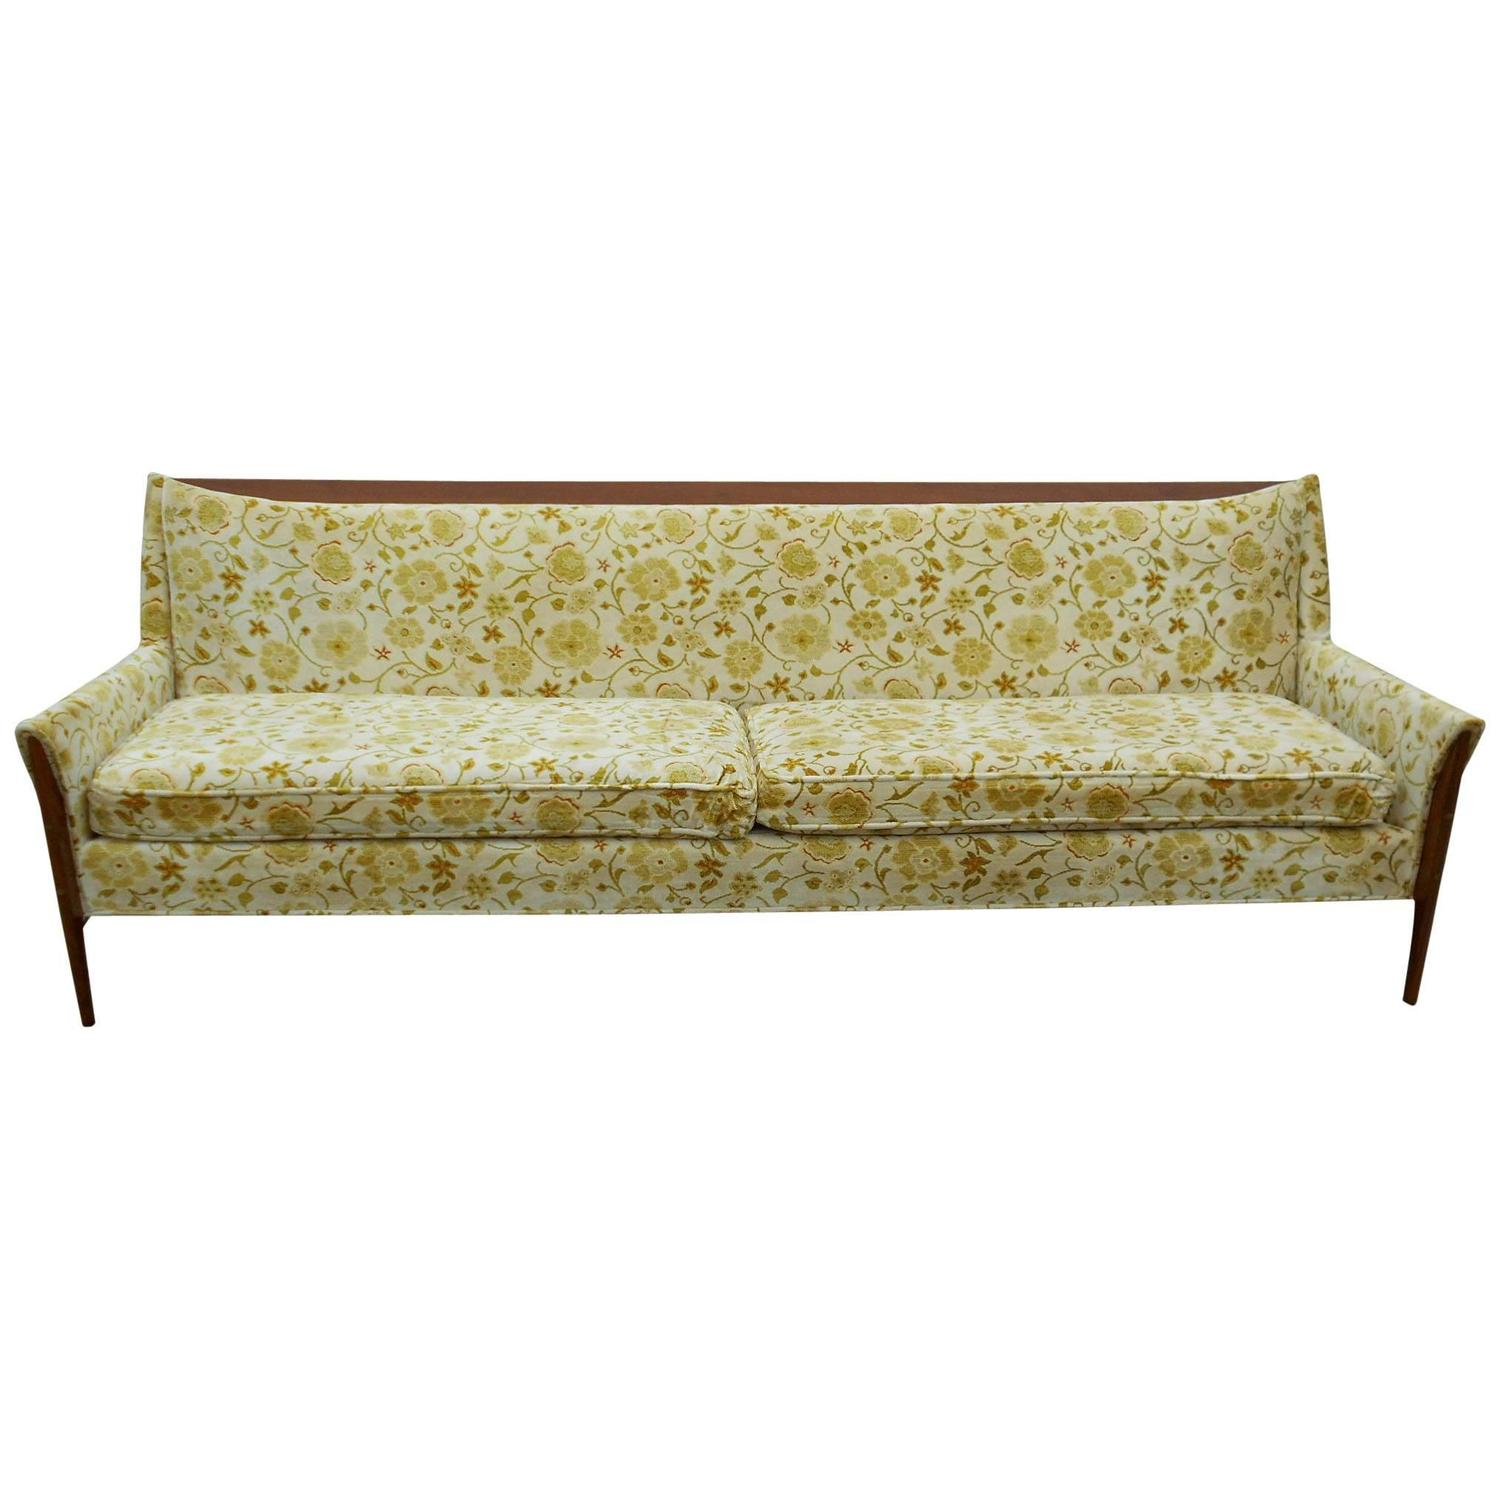 Mid-Century Modern Walnut Sofa at 1stdibs